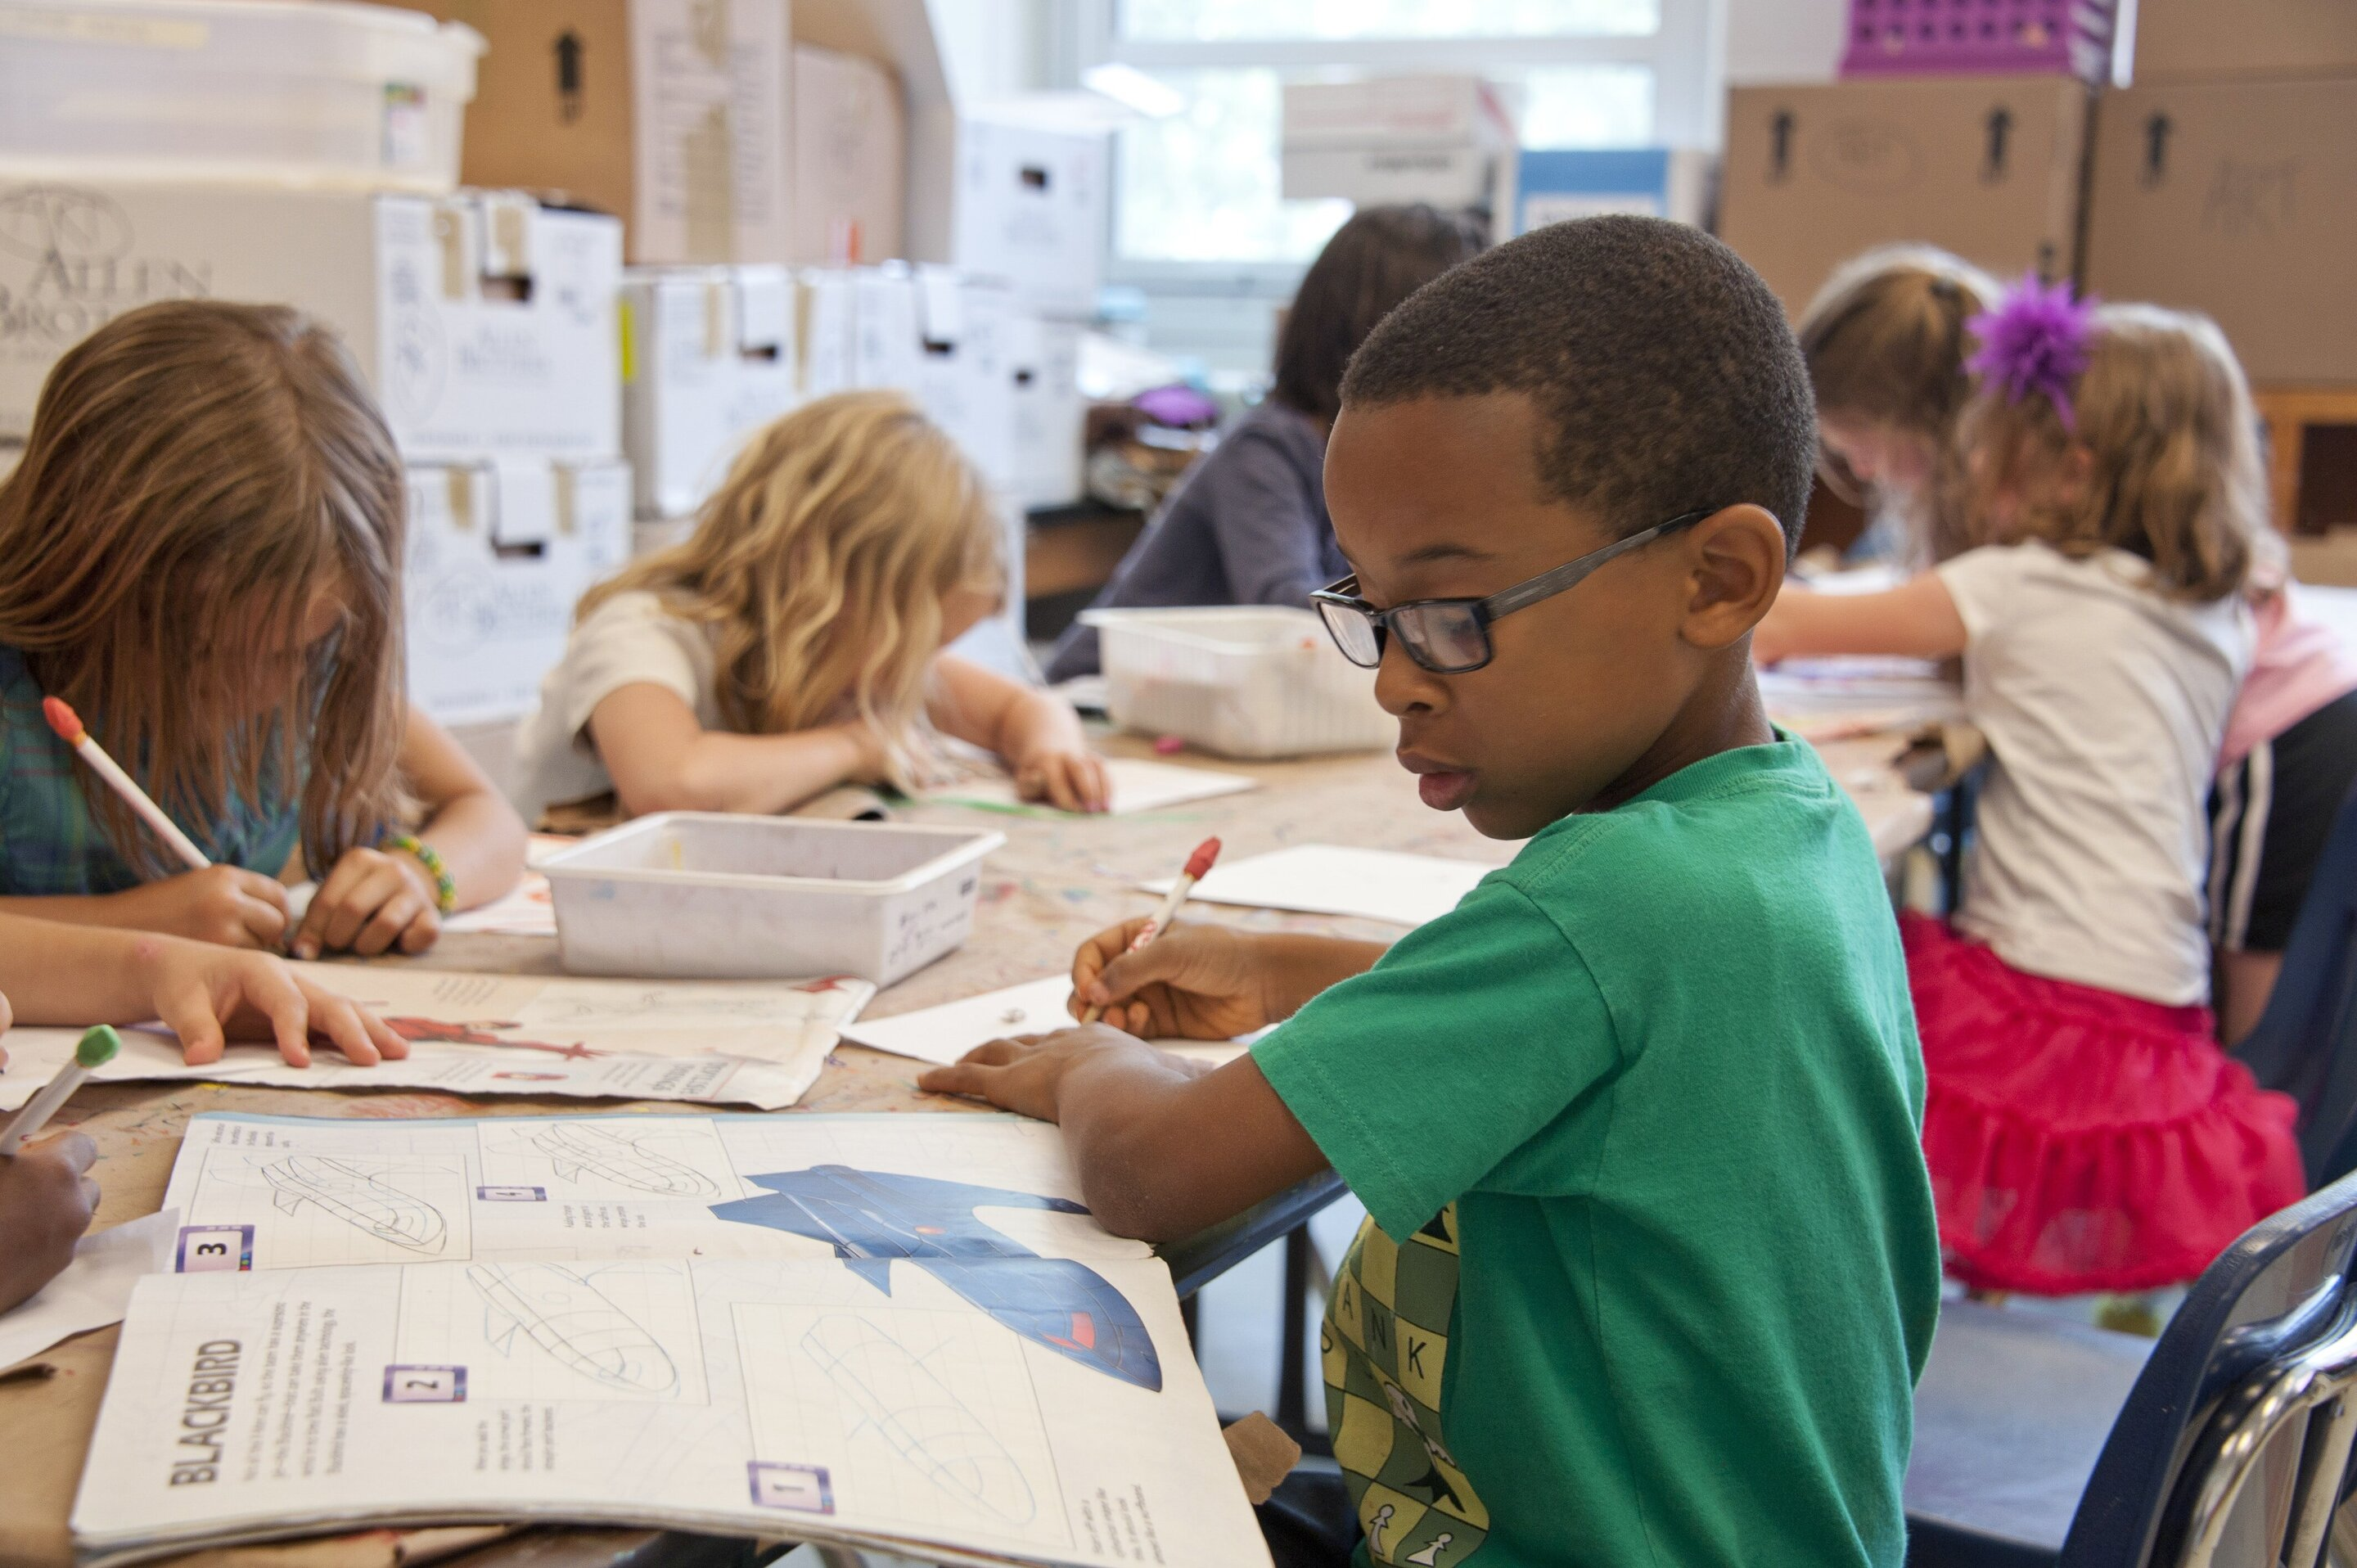 Kids aren't racist, are they? Code of silence at schools stunts long-term racial literacy